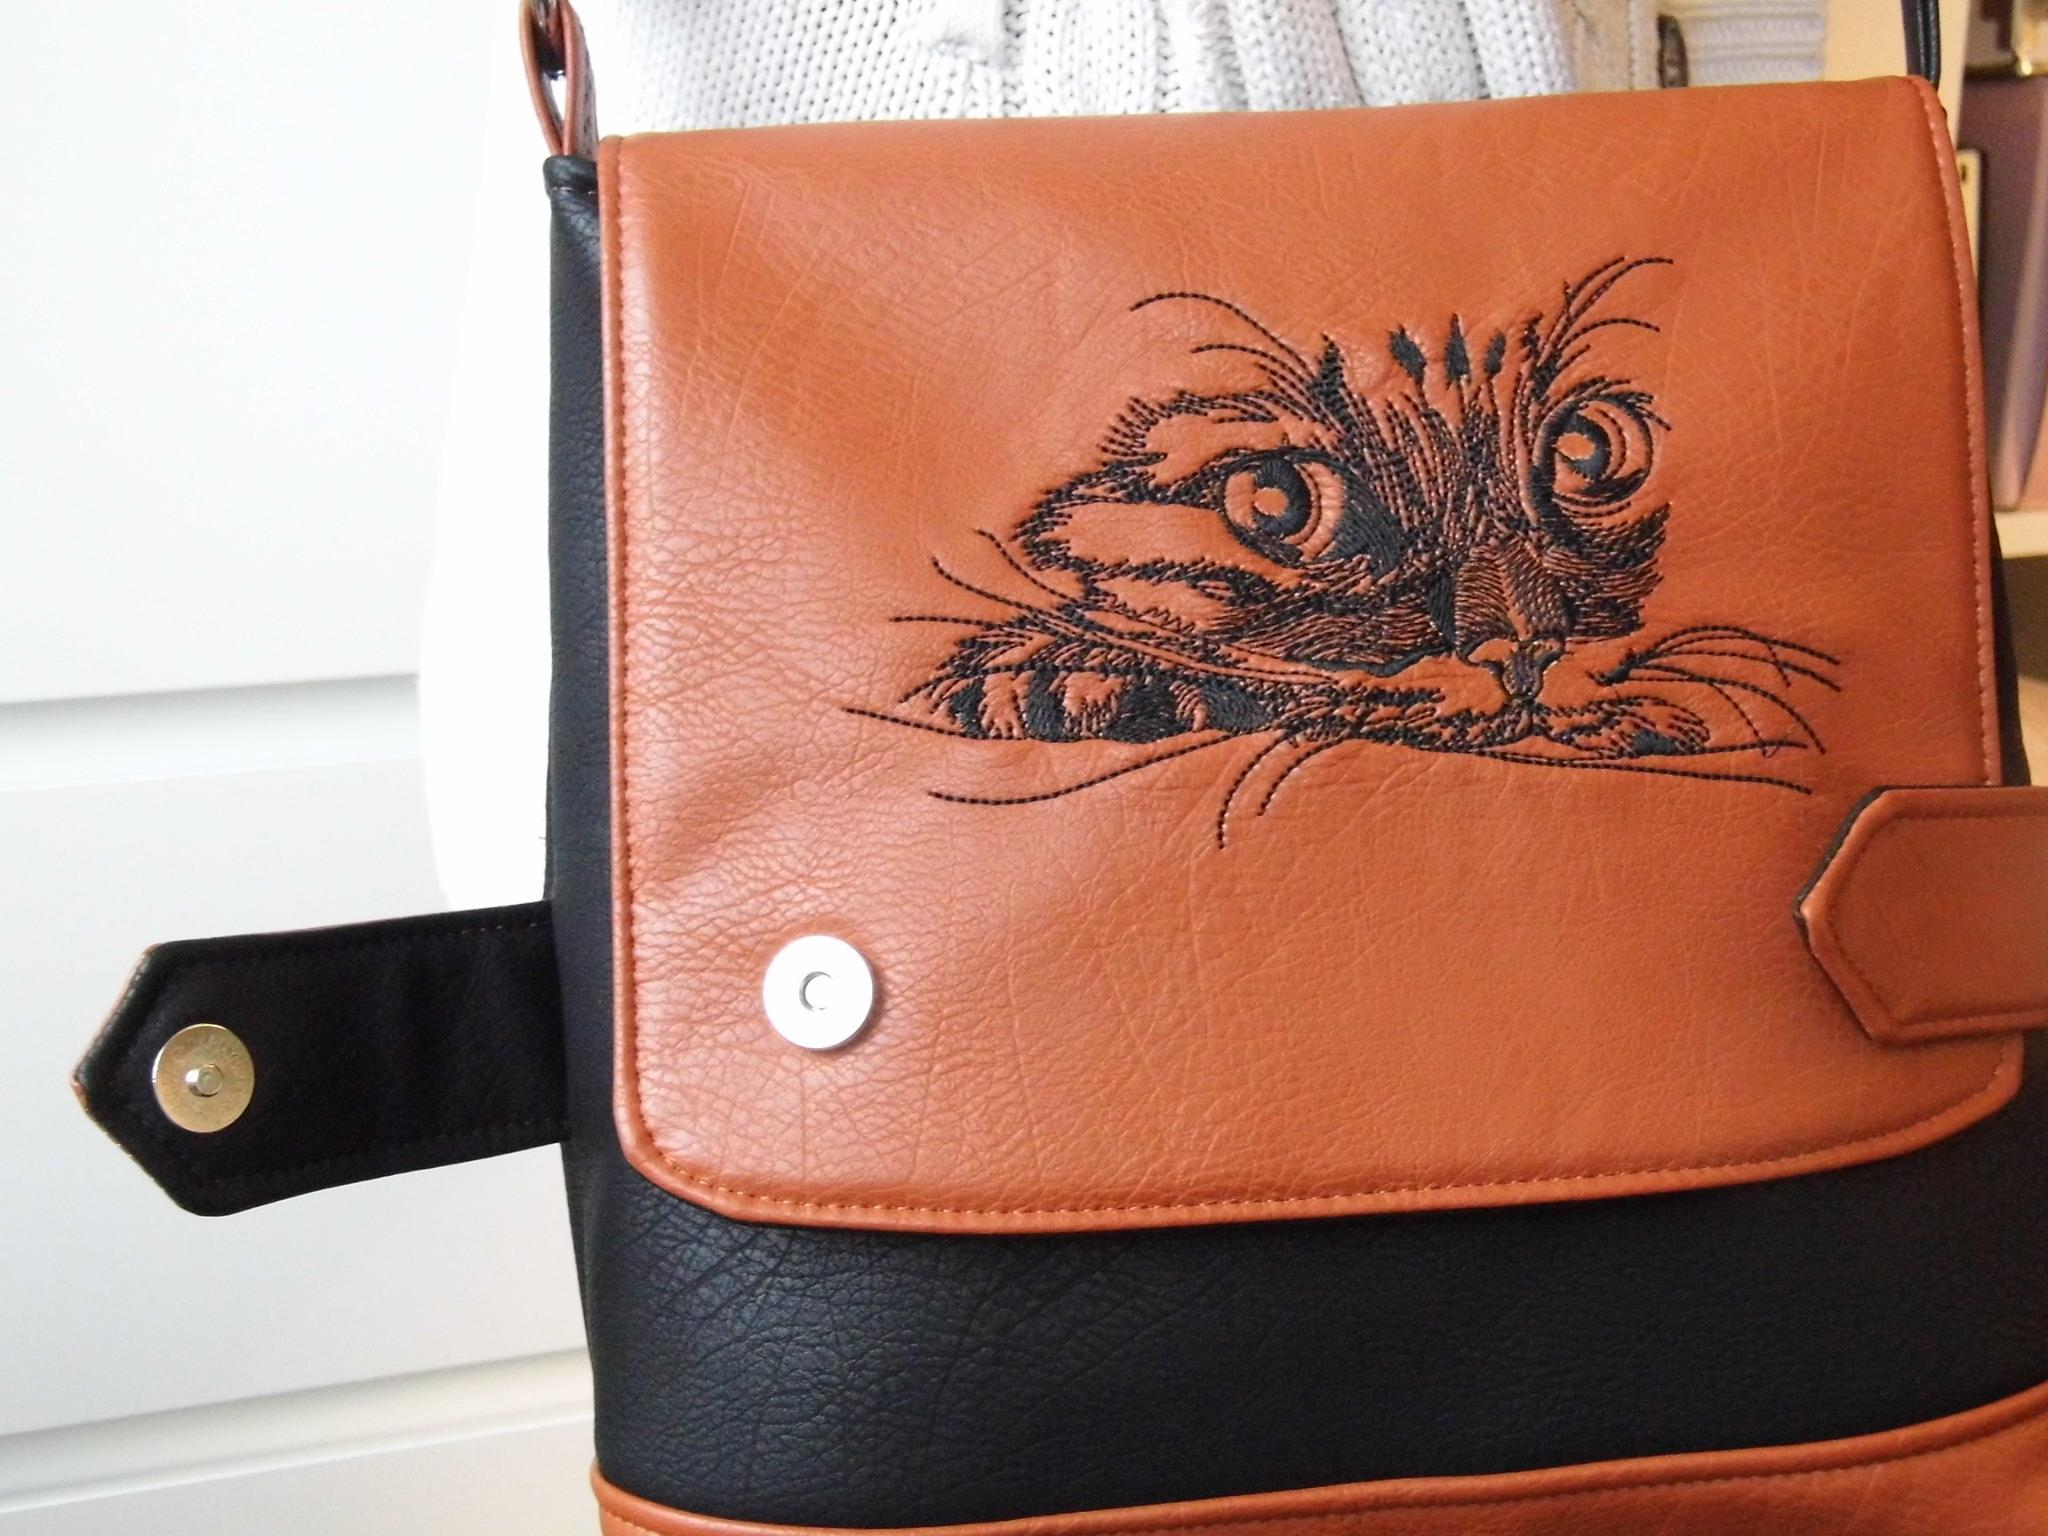 Leather bag with Curious cat machine embroidery design